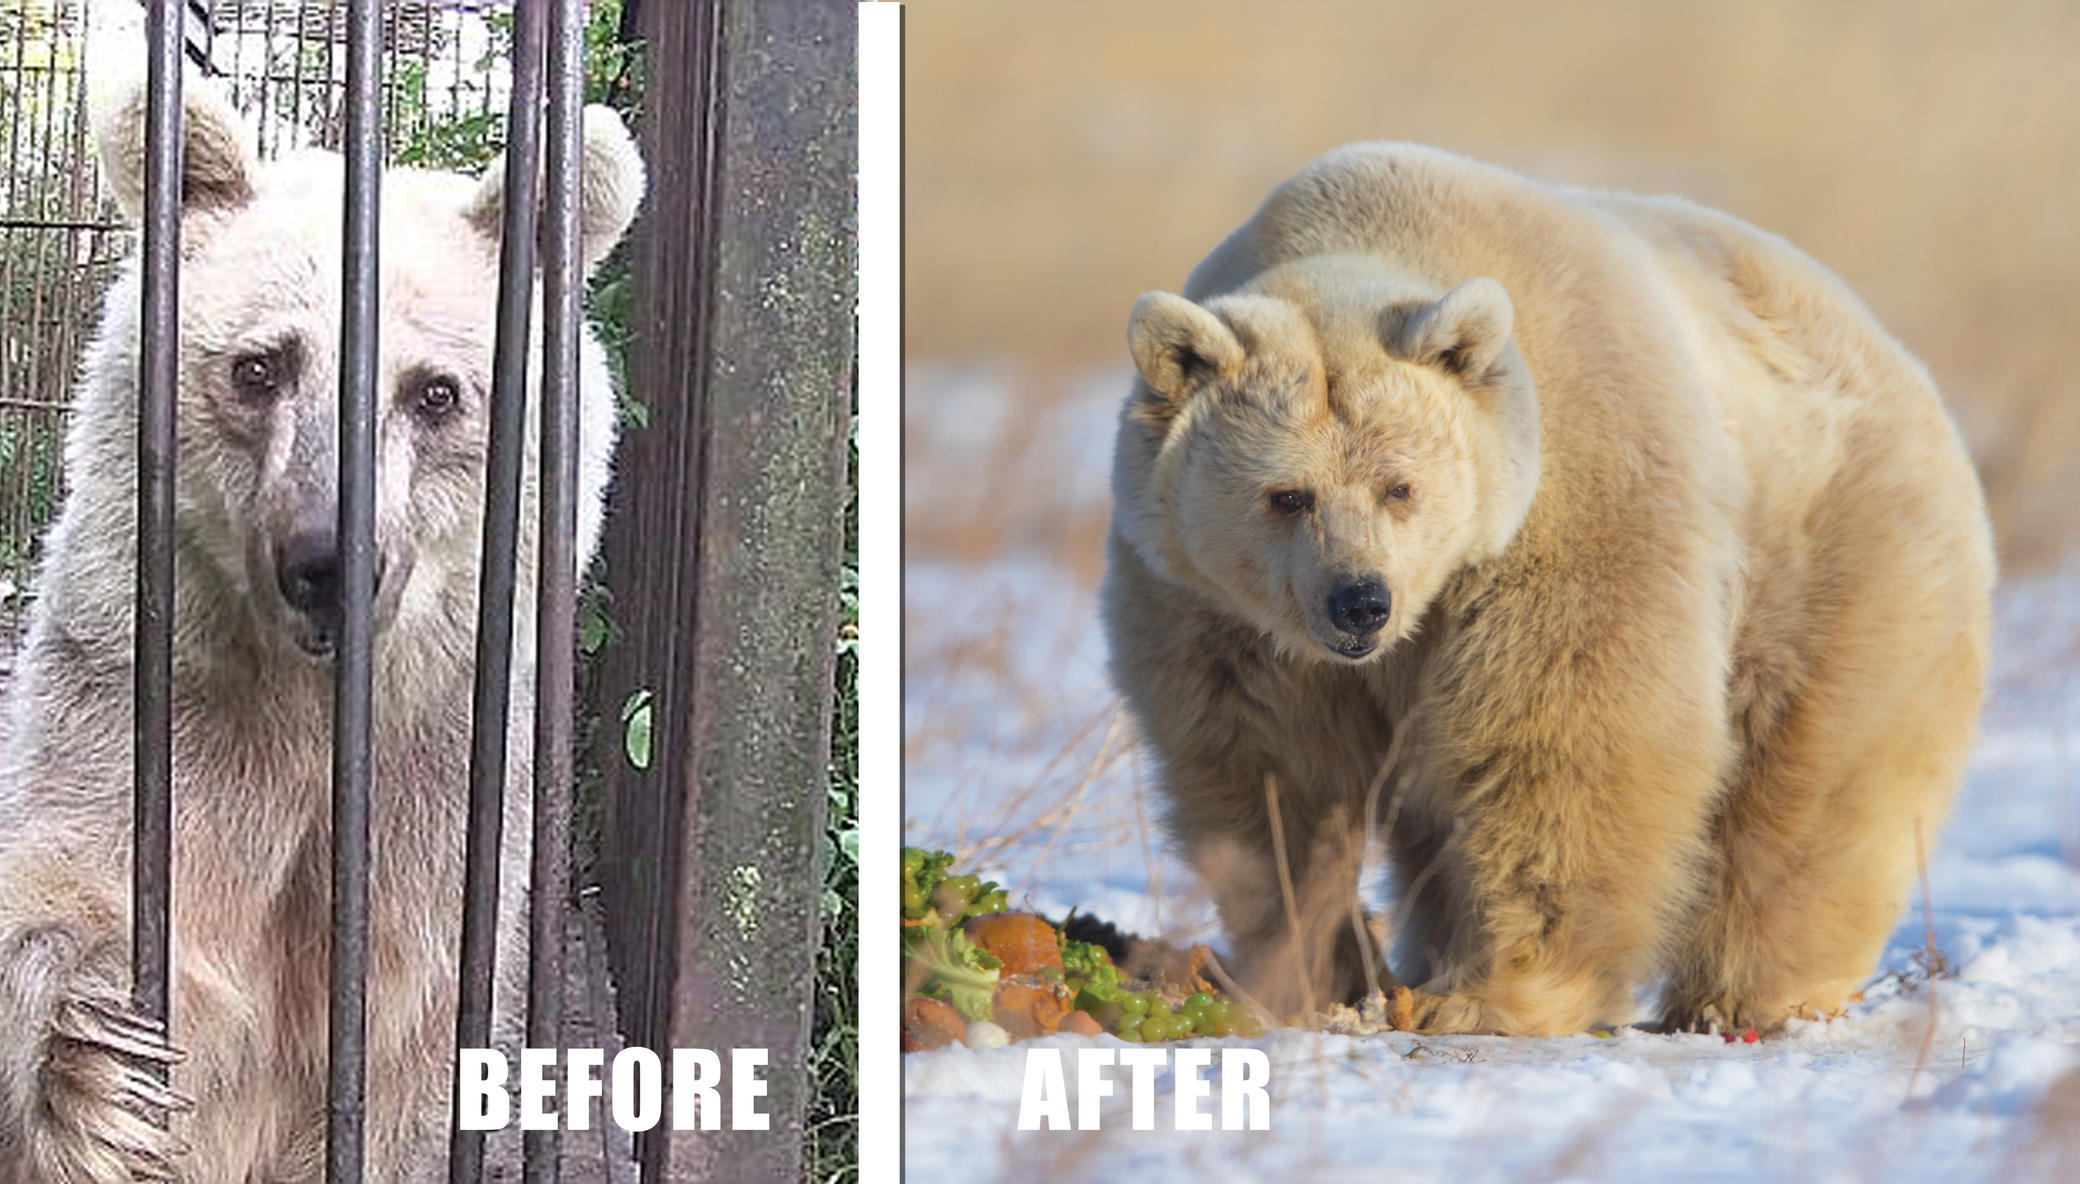 Help Over 600 Rescued Lions, Tigers, & Bears